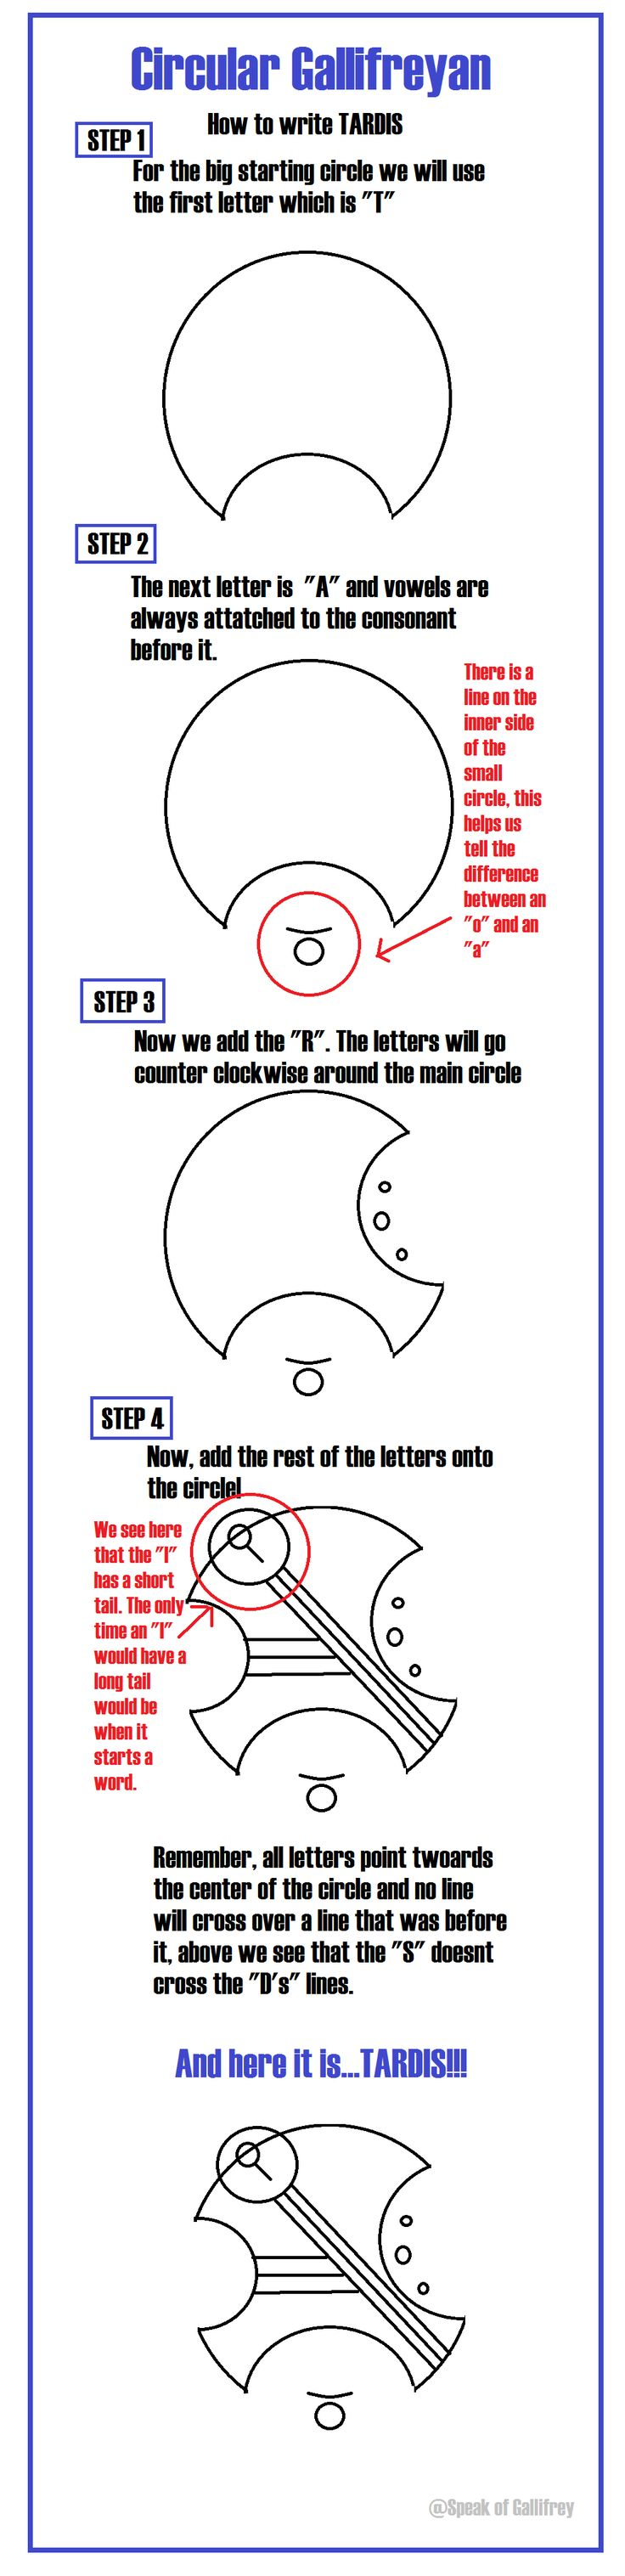 TARDIS, written in Circular Gallifreyan. A step by step tutorial on how to write TARDIS.